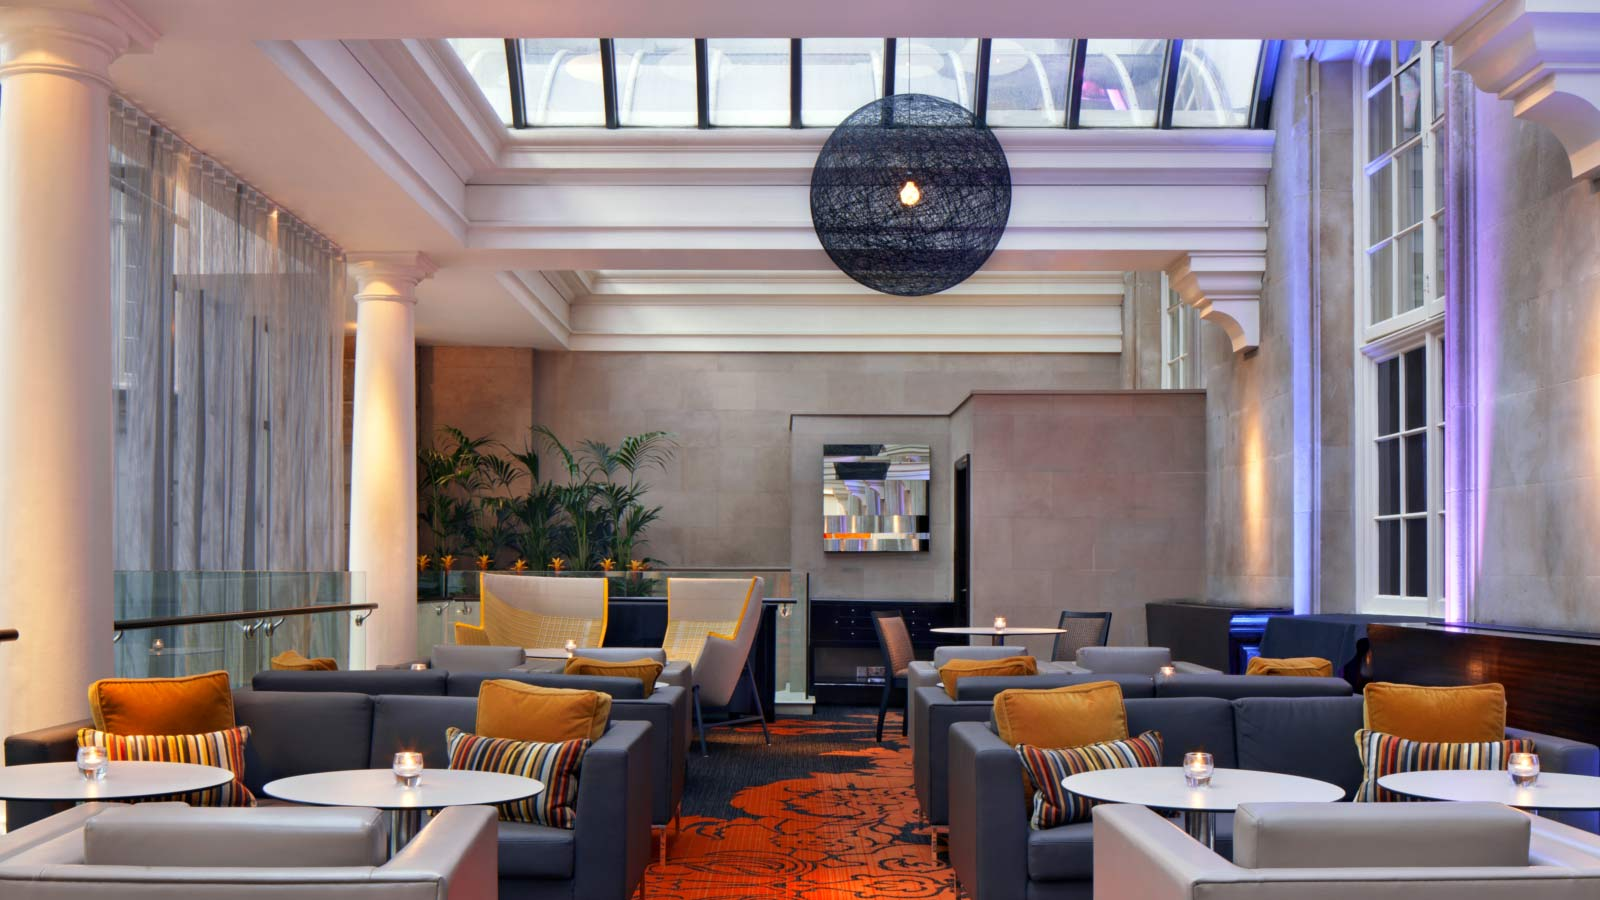 Living Room Bar And Terrace Disabled Holidays In England At The Le Meridien Piccadilly London